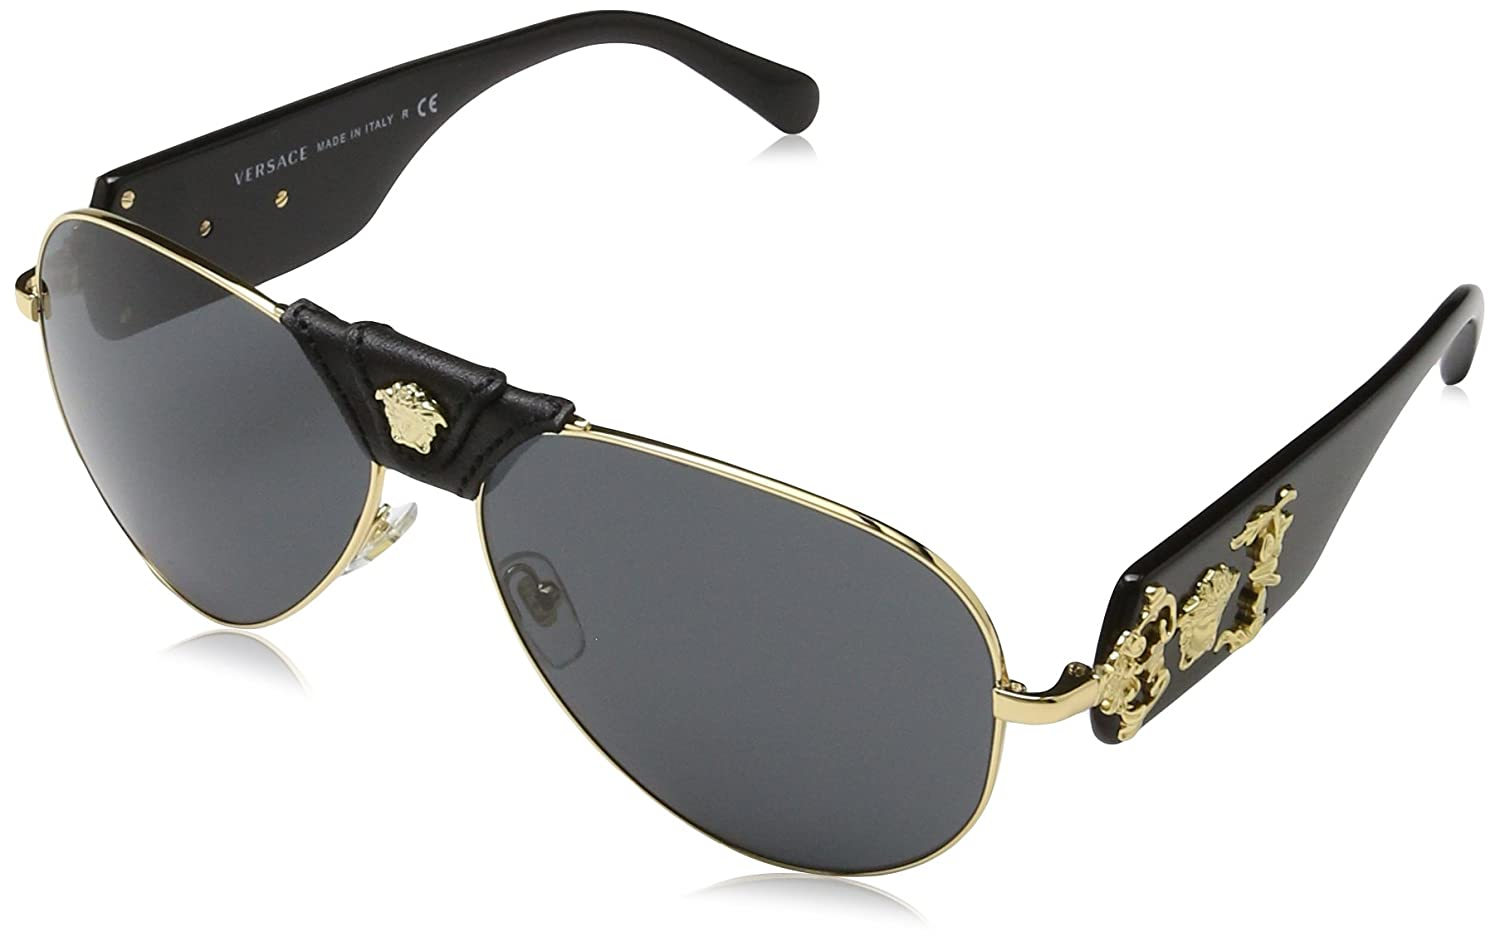 a146bf8579d Amazon.com  Versace Mens Sunglasses Gold Grey Metal - Non-Polarized - 62mm   Versace  Clothing